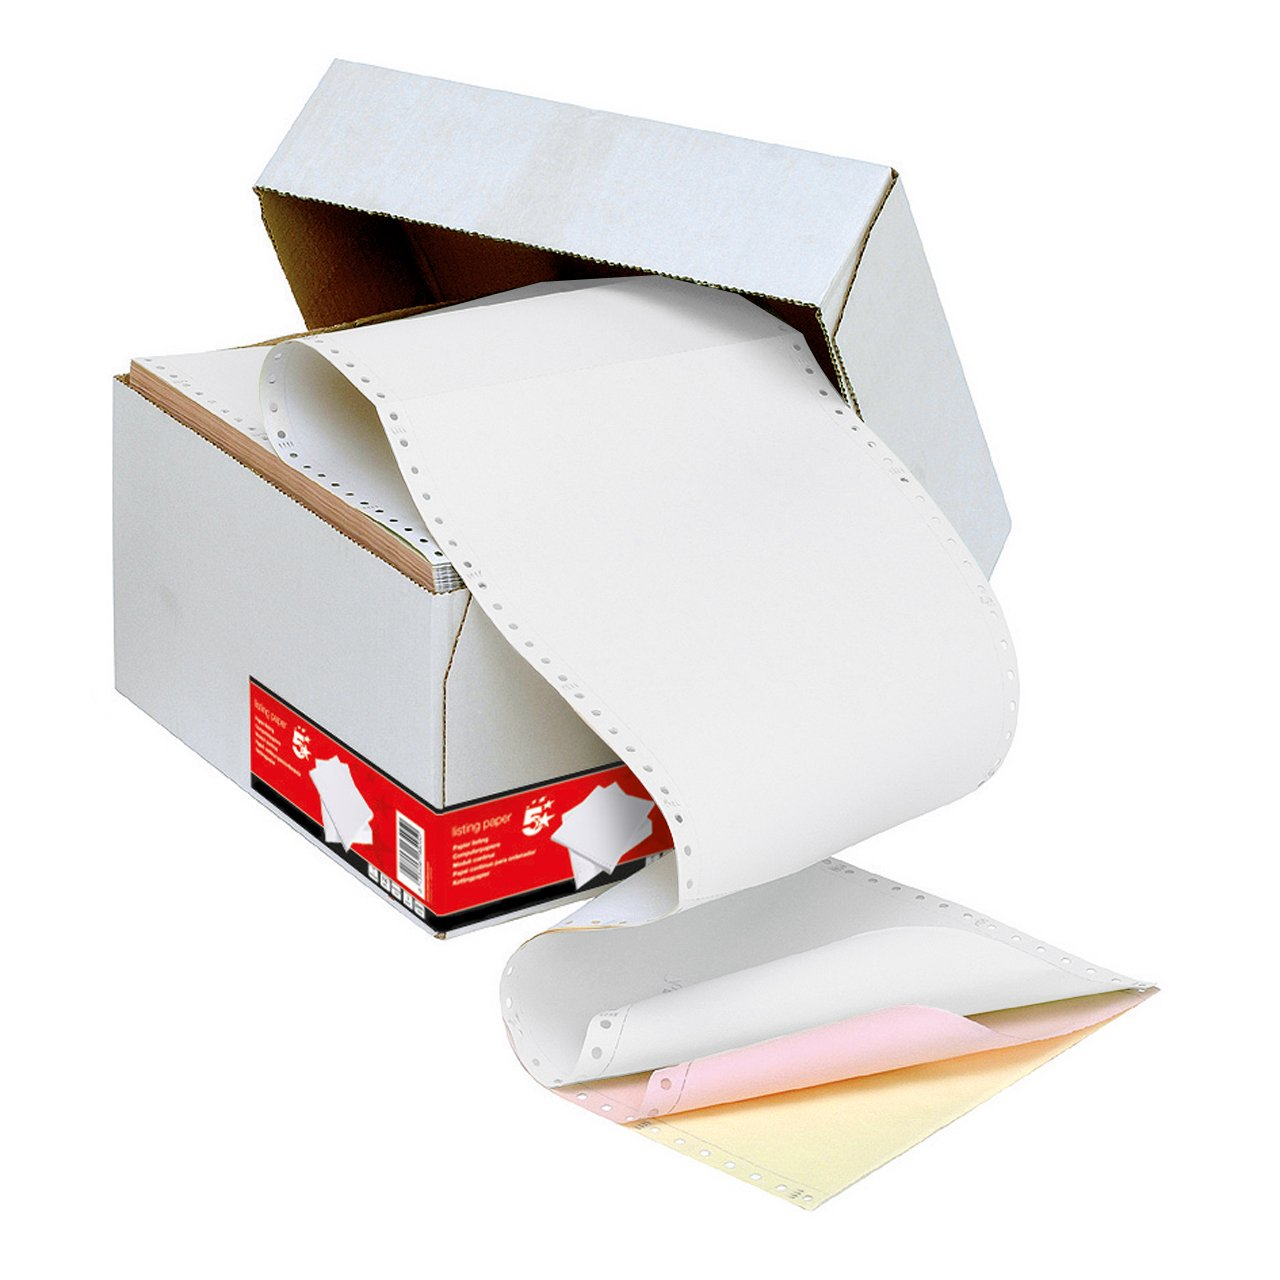 Challenge Listing Paper 3-Part Carbonless Standard Perforated Sheets 11inchx241mm 3 Colours [700 Sheets] by Challenge